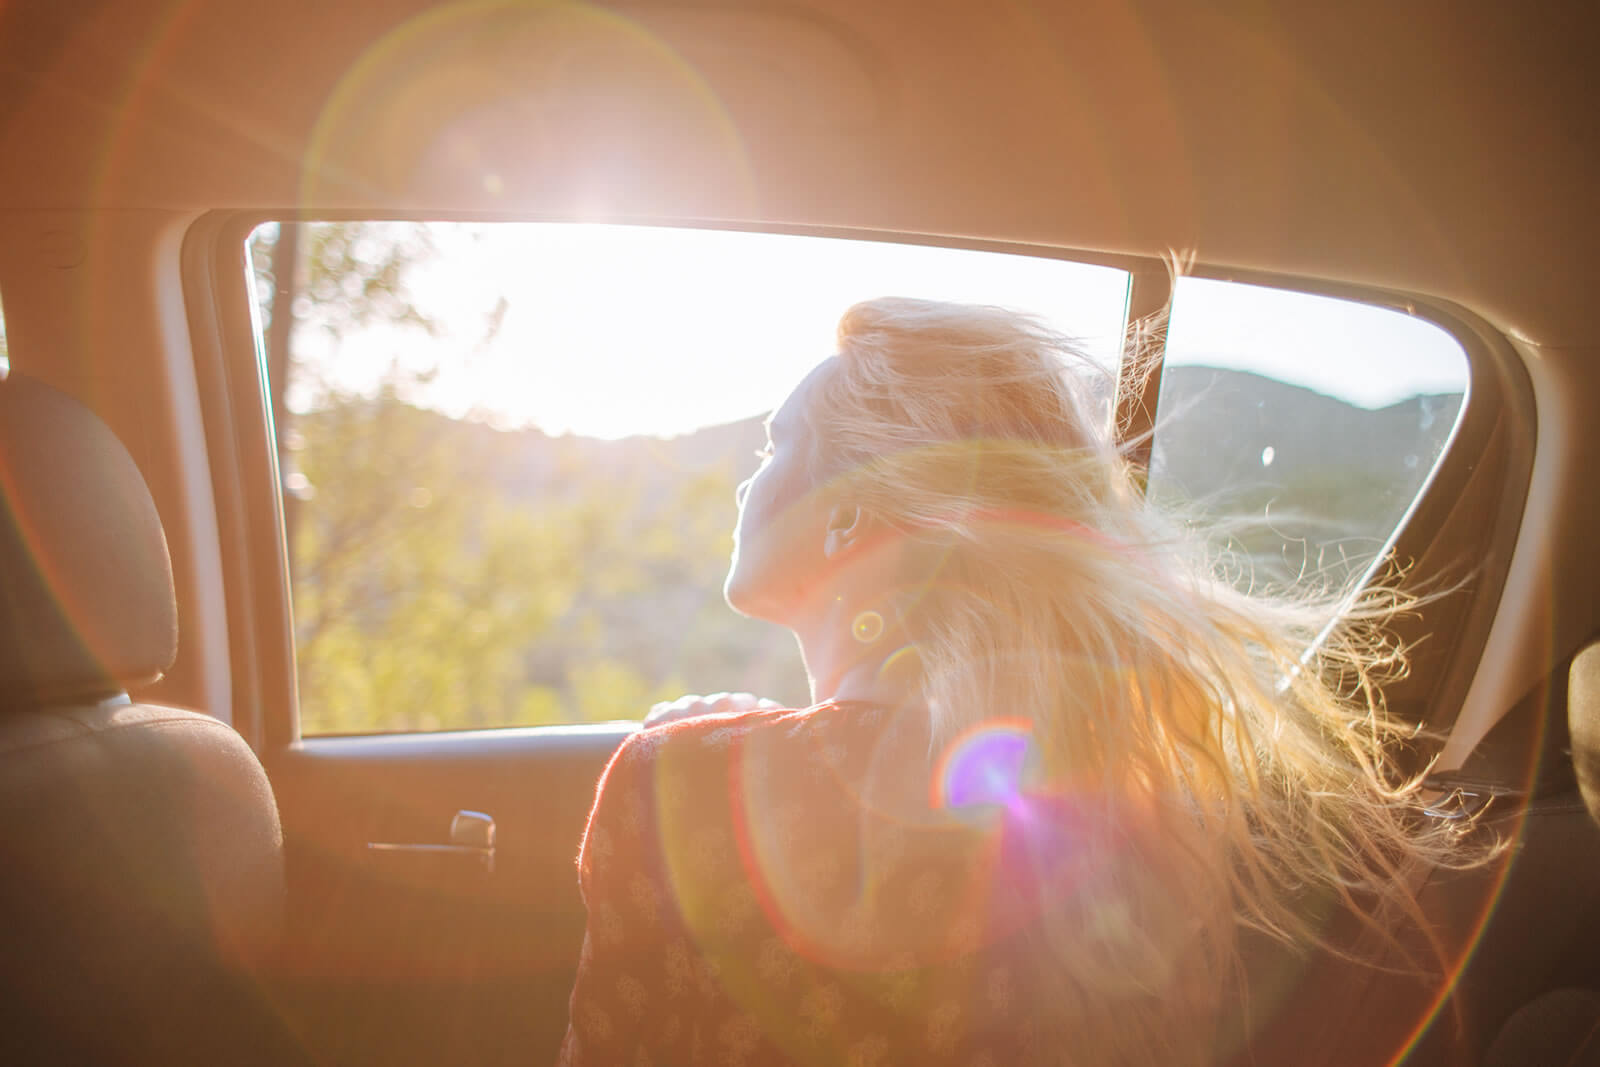 A woman illuminated by sunlight through a  car window